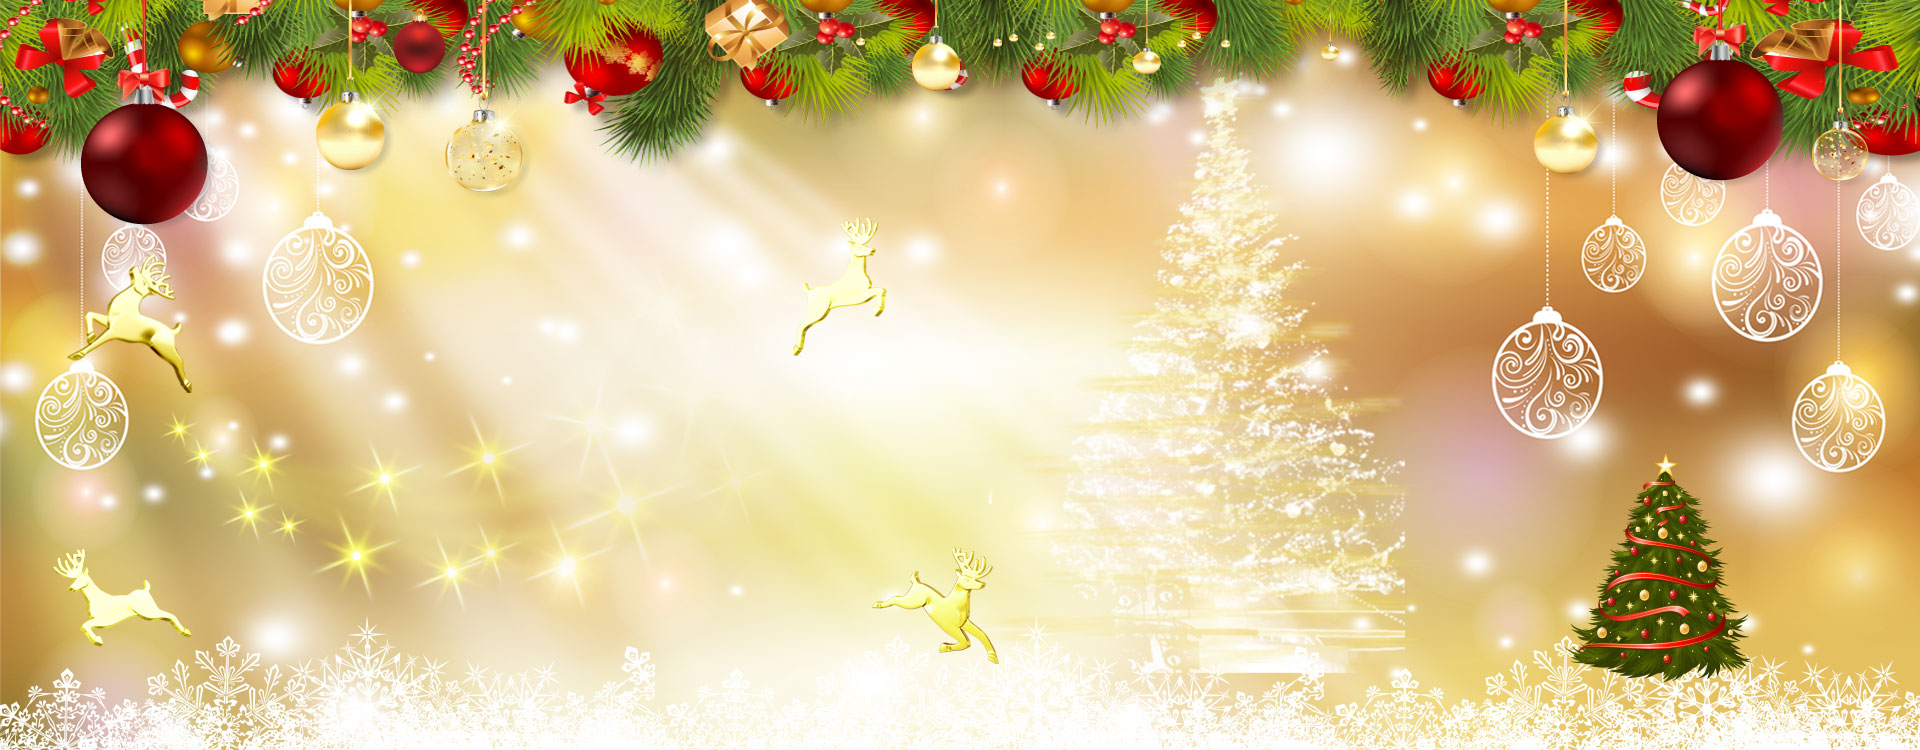 Christmas Backgrounds Png.Christmas Background With Lights